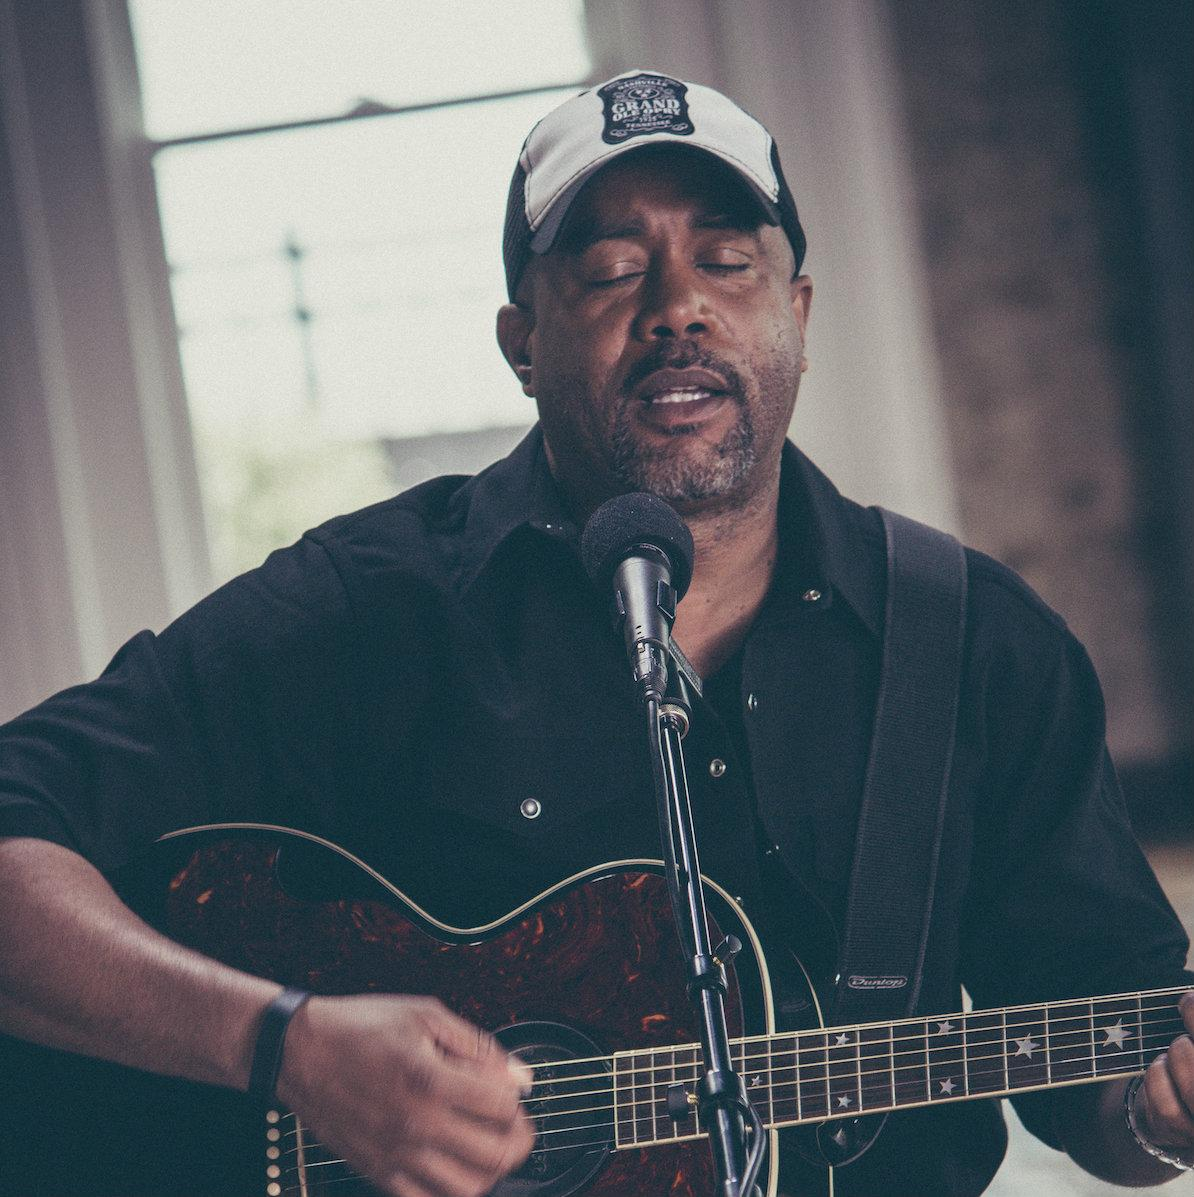 EXCLUSIVE! @dariusrucker's acoustic performance of 'Alright' debuting on ZUUS now-check it out http://t.co/O3sosA4rme http://t.co/9KJjXiL3u1